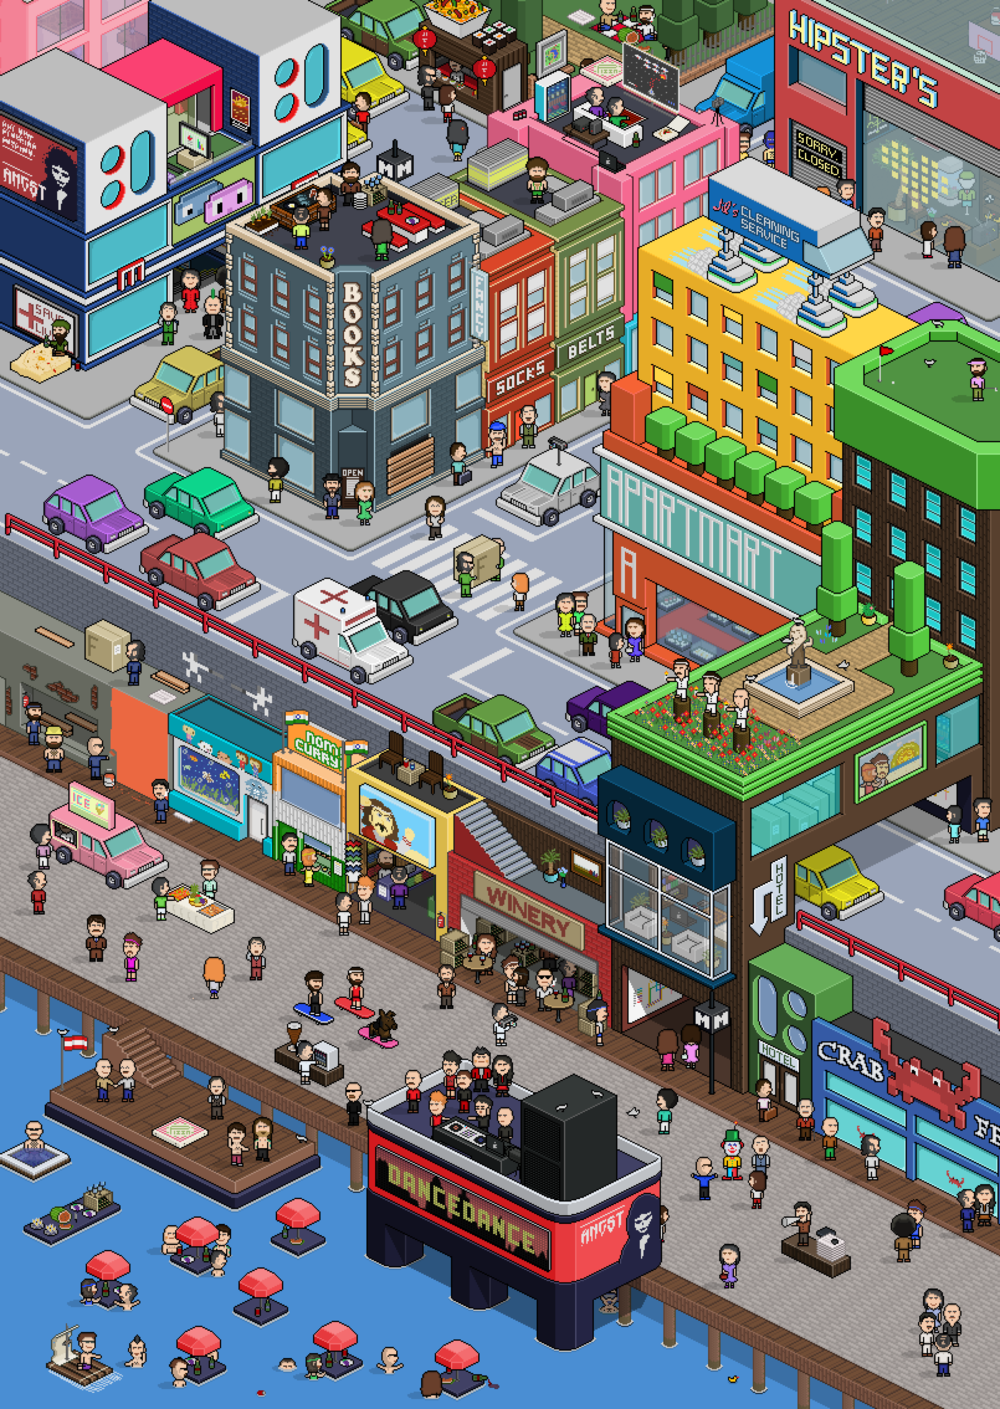 pixelcity_picture_2.png